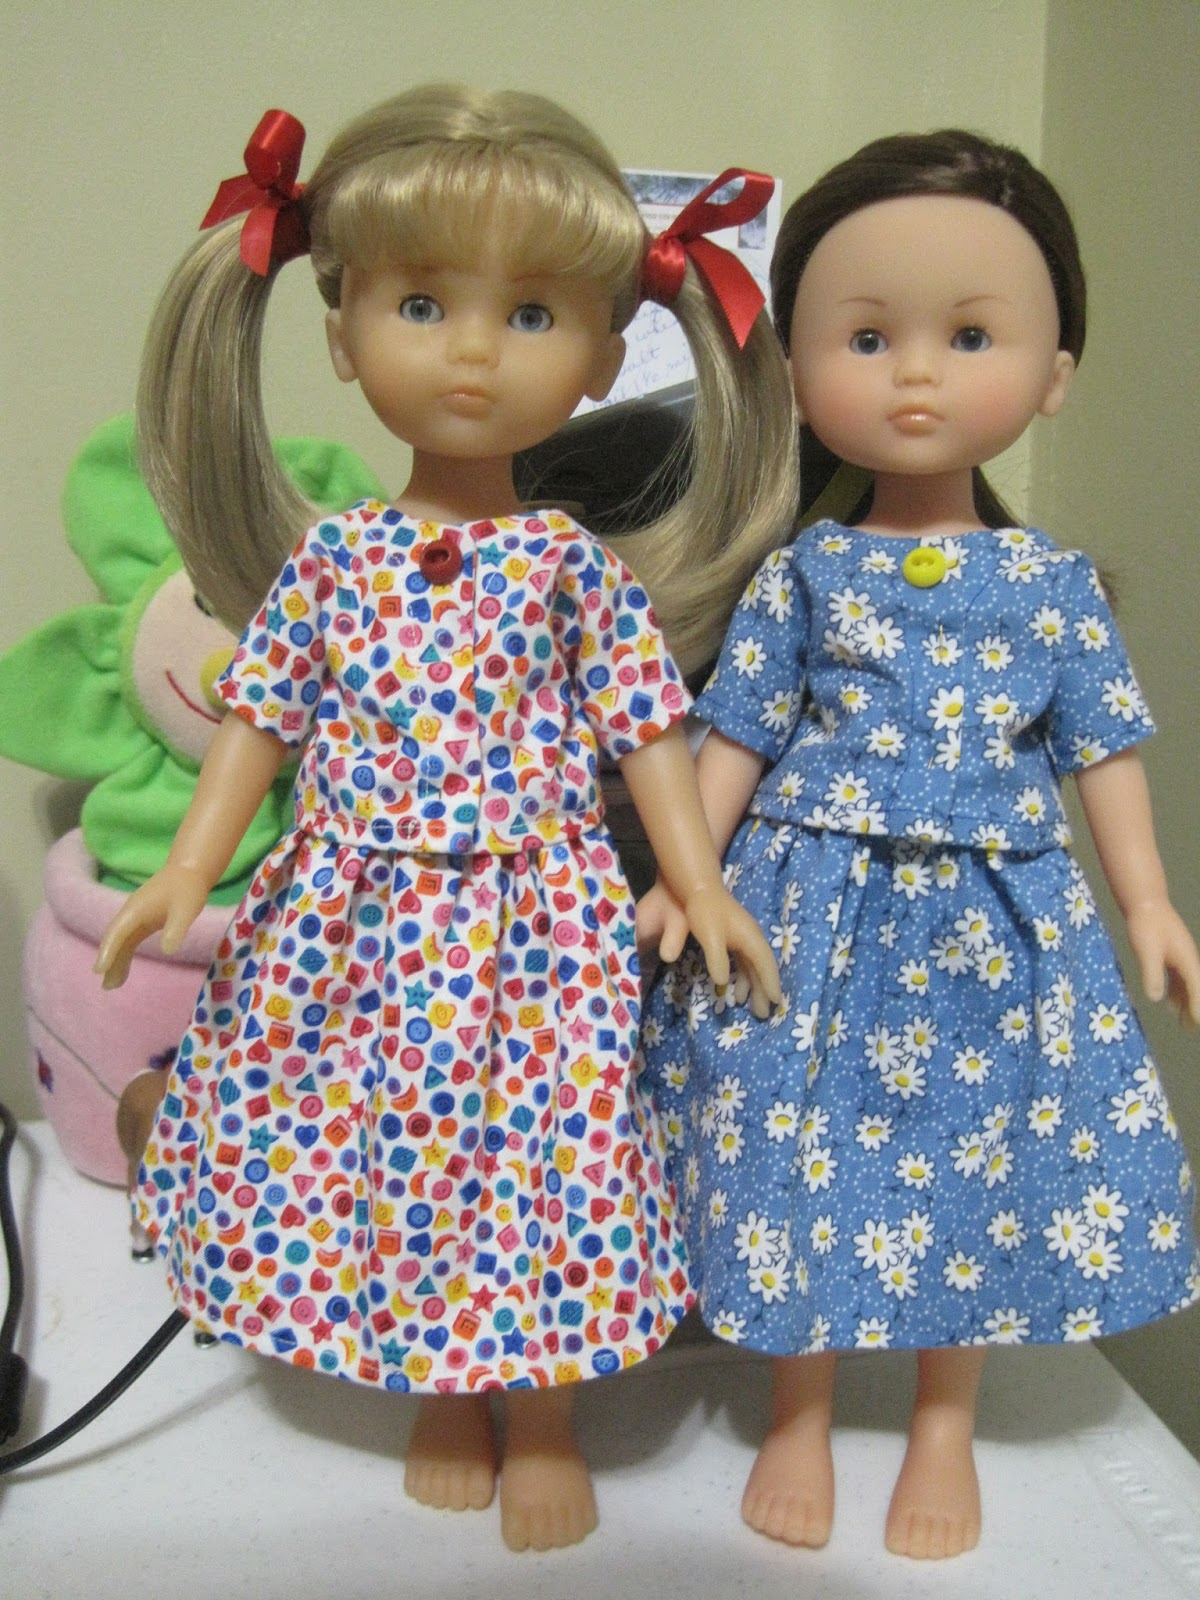 Raine Crowe Crochet Dolls And Stuff Another Corolle Les